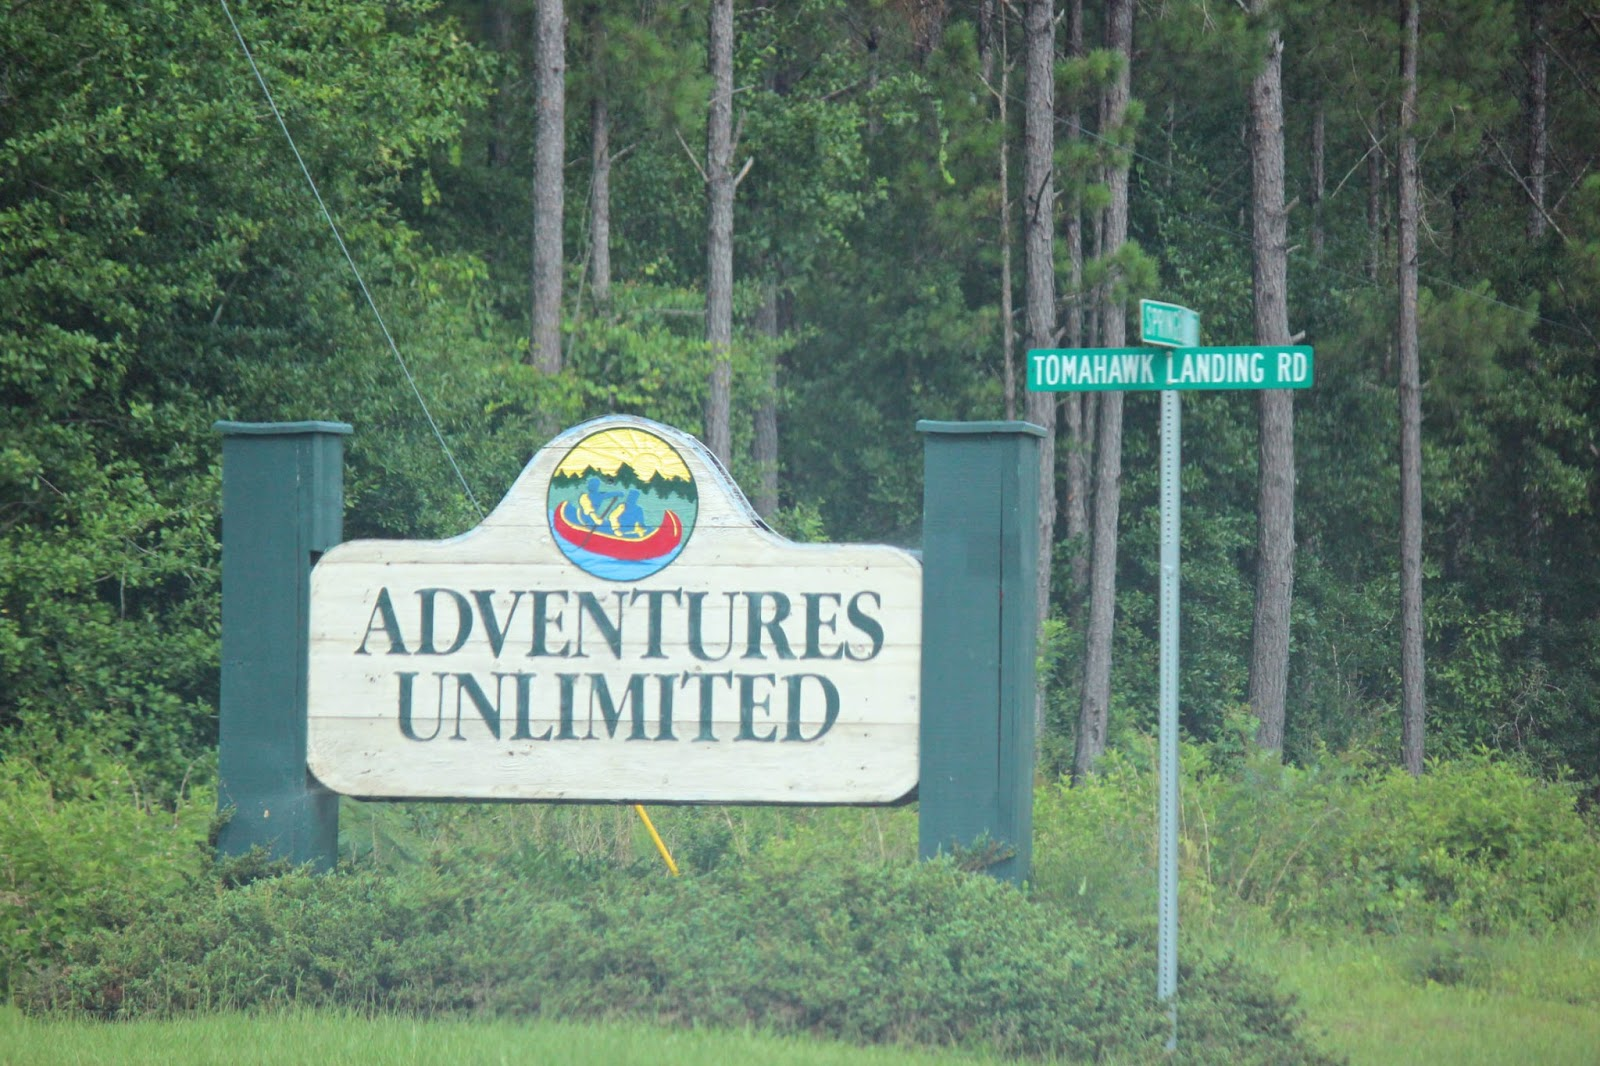 adventures unlimited 2018-06-12 horizons unlimited has been the premier source for information on motorcycle and overland adventure travel since 1997.